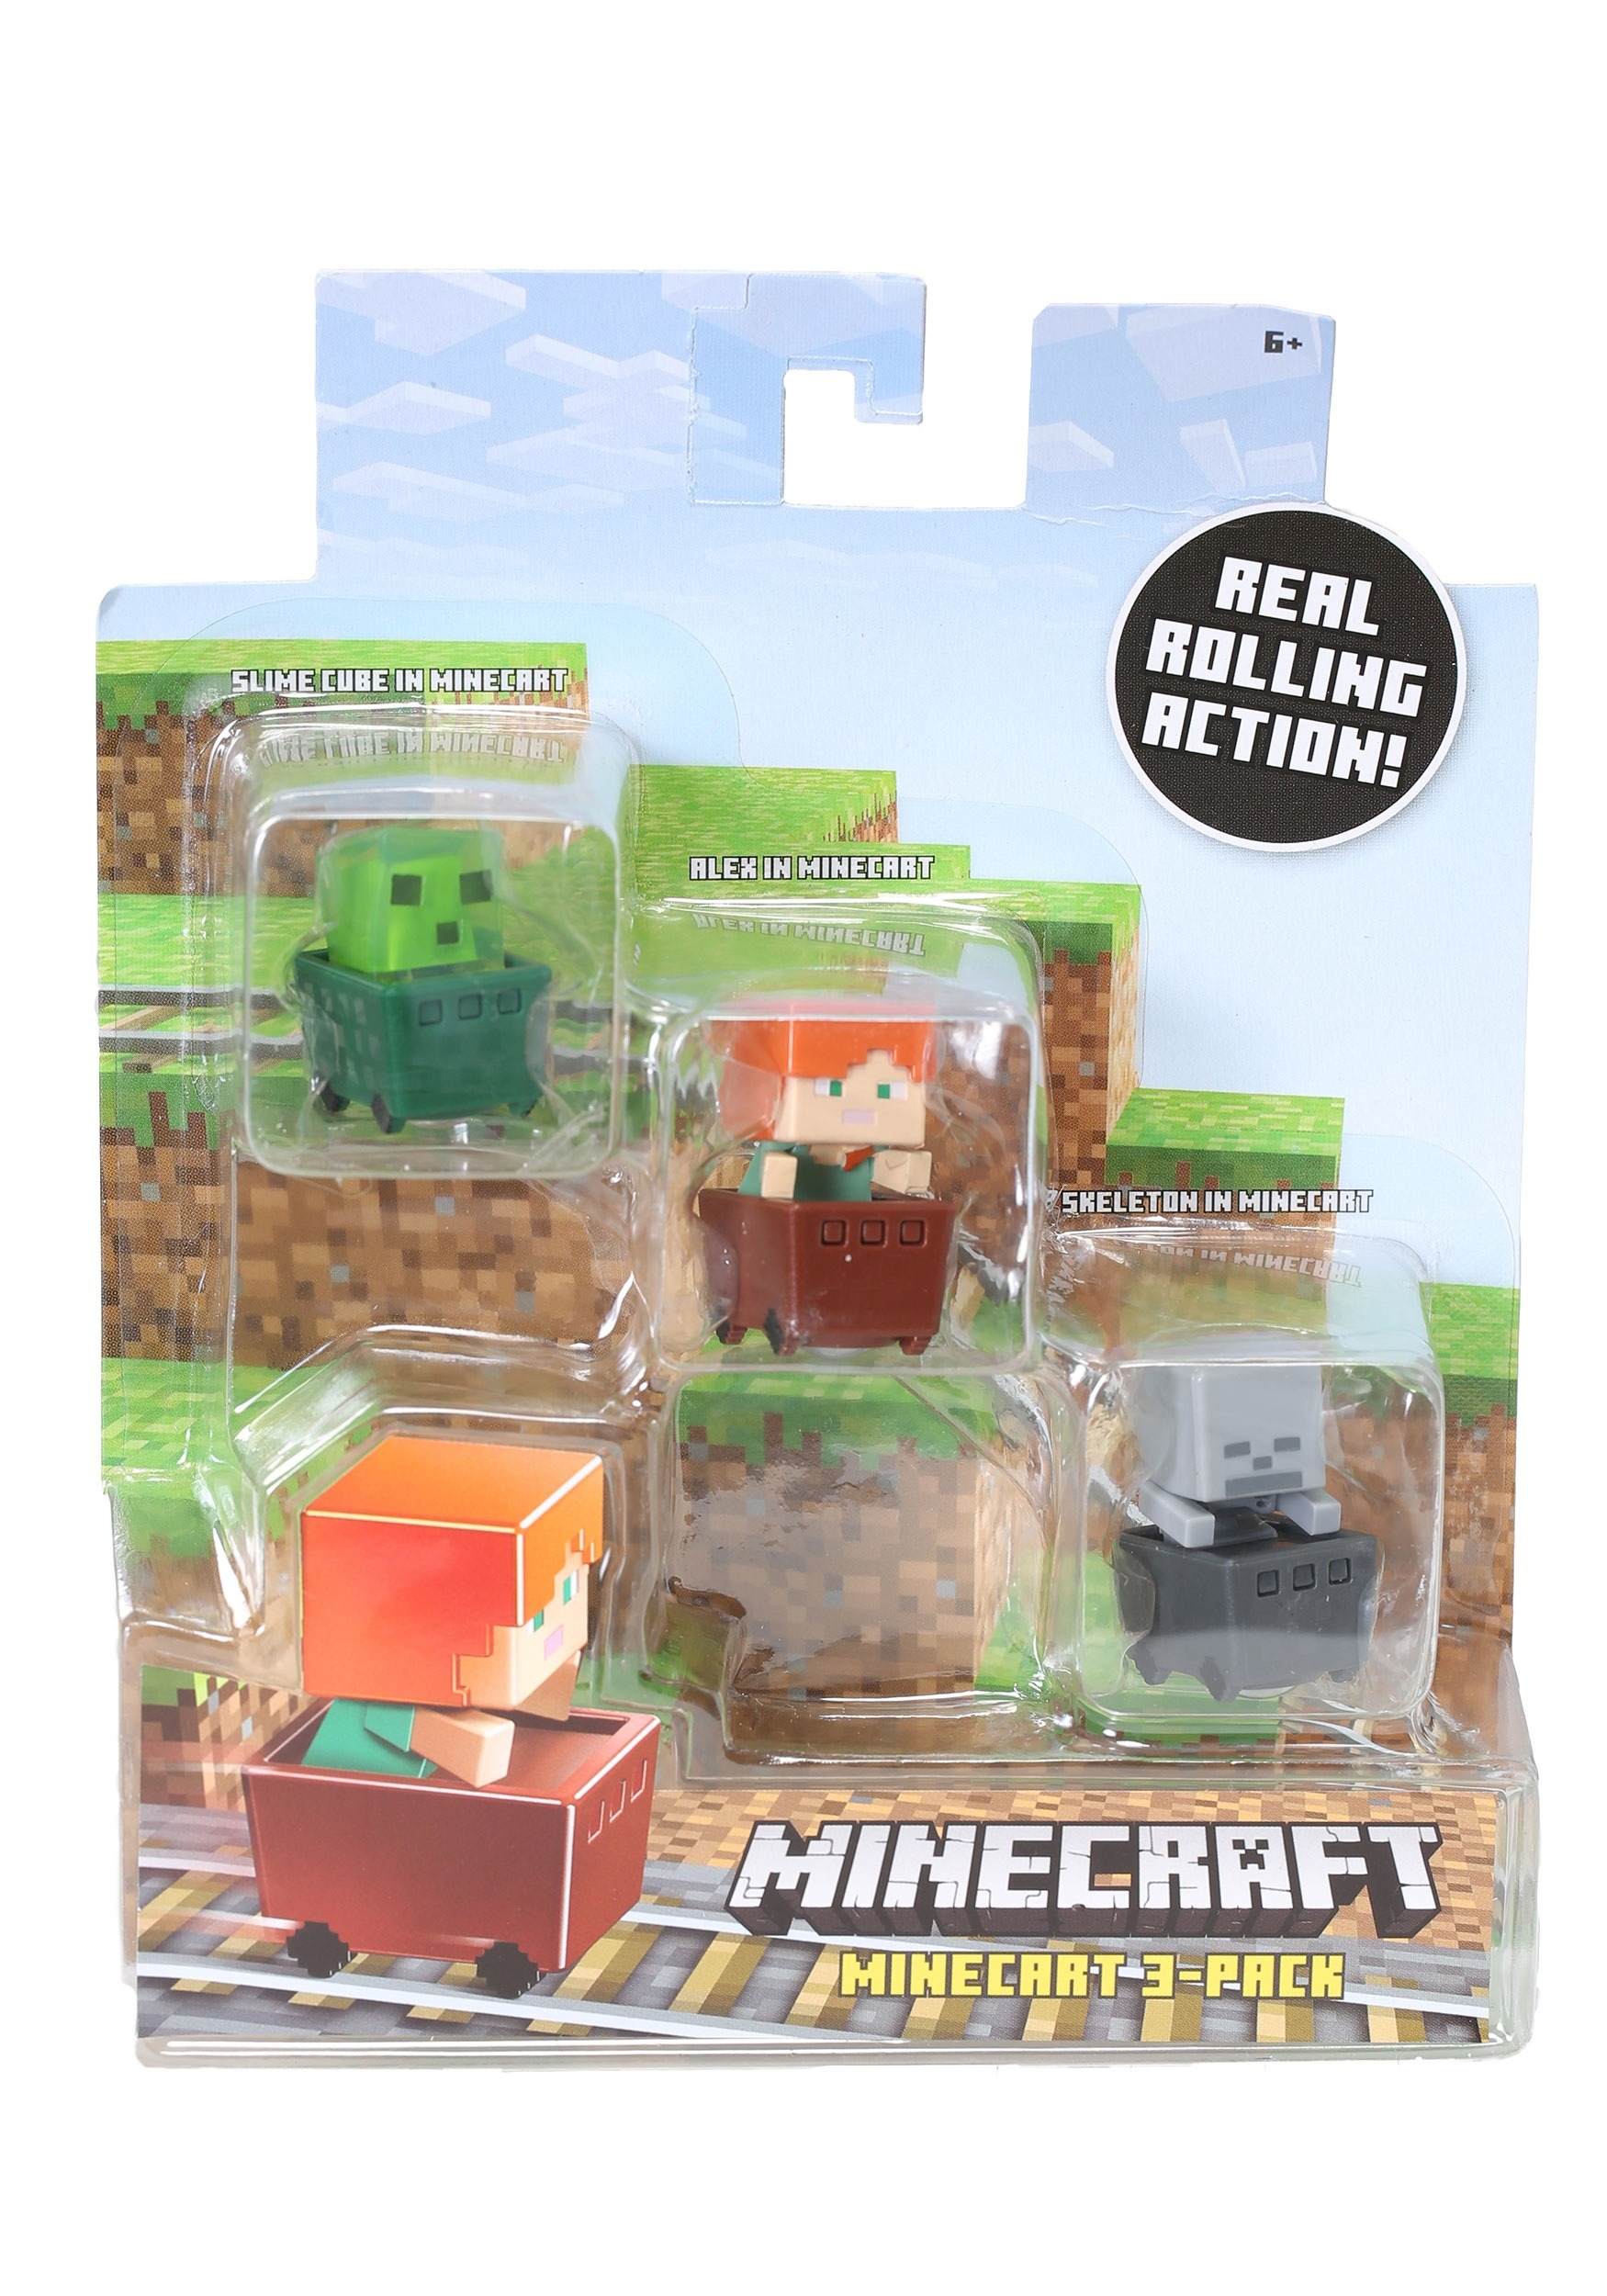 Minecraft Slime Cube, Alex, Skeleton Figure 3 Pack MLFFK78